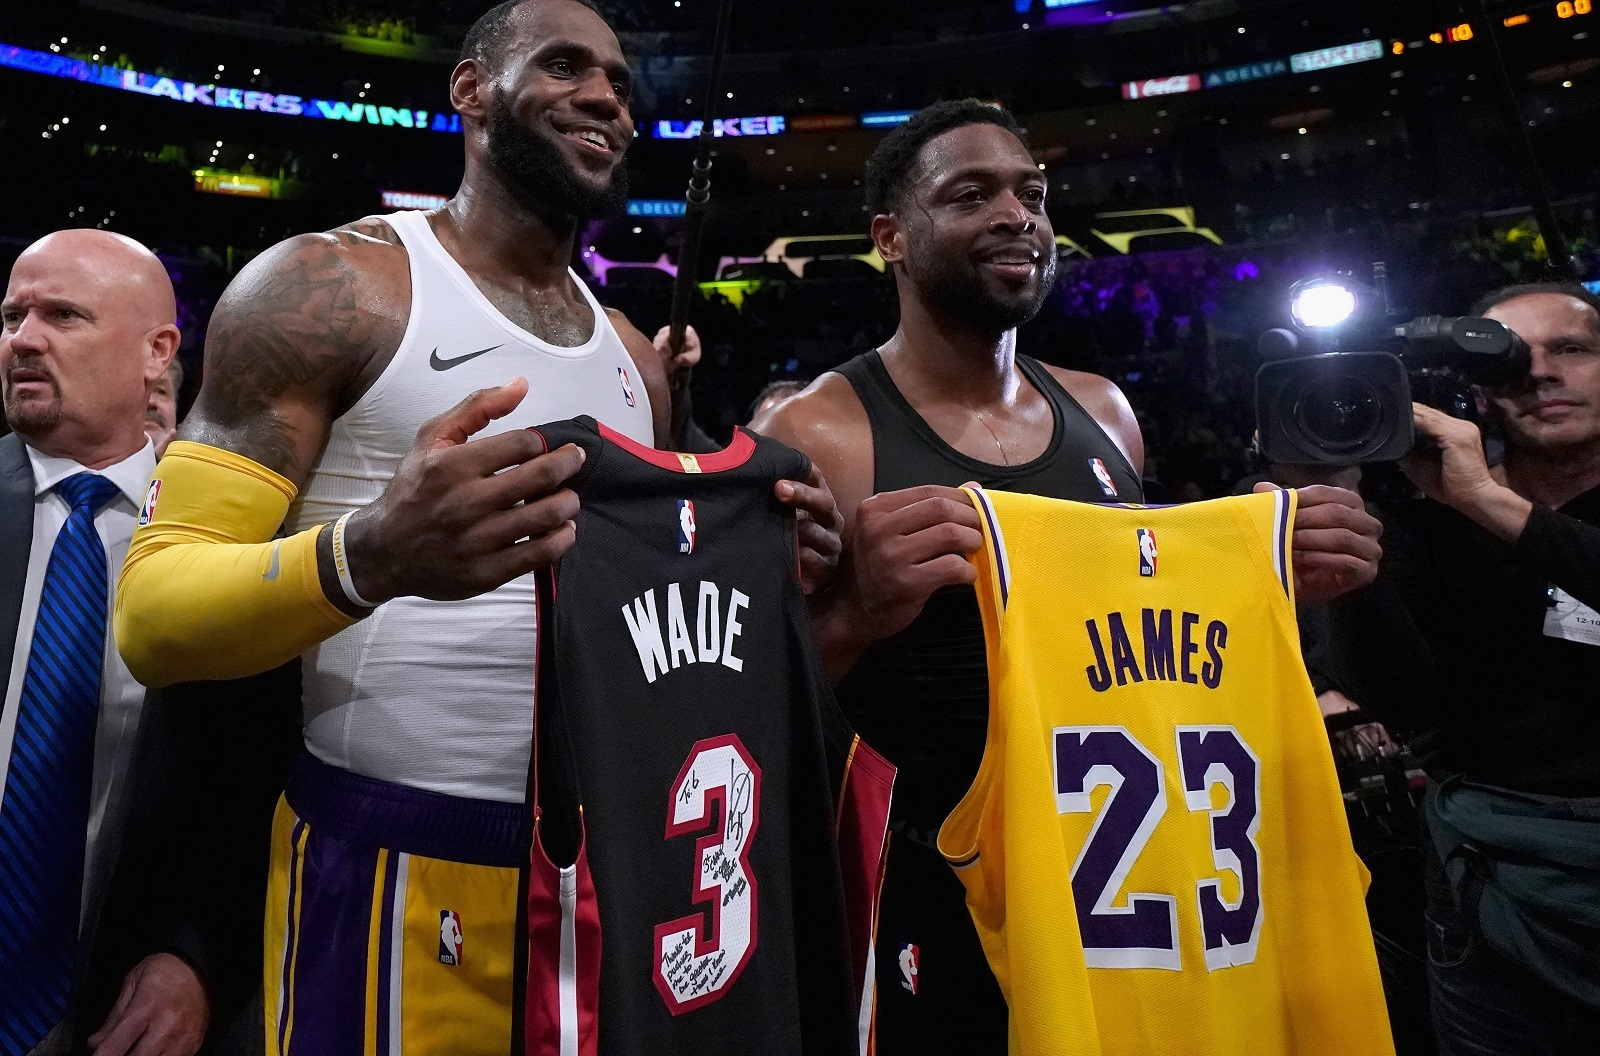 NBA: La grosse émotion entre LeBron James et Dwyane Wade